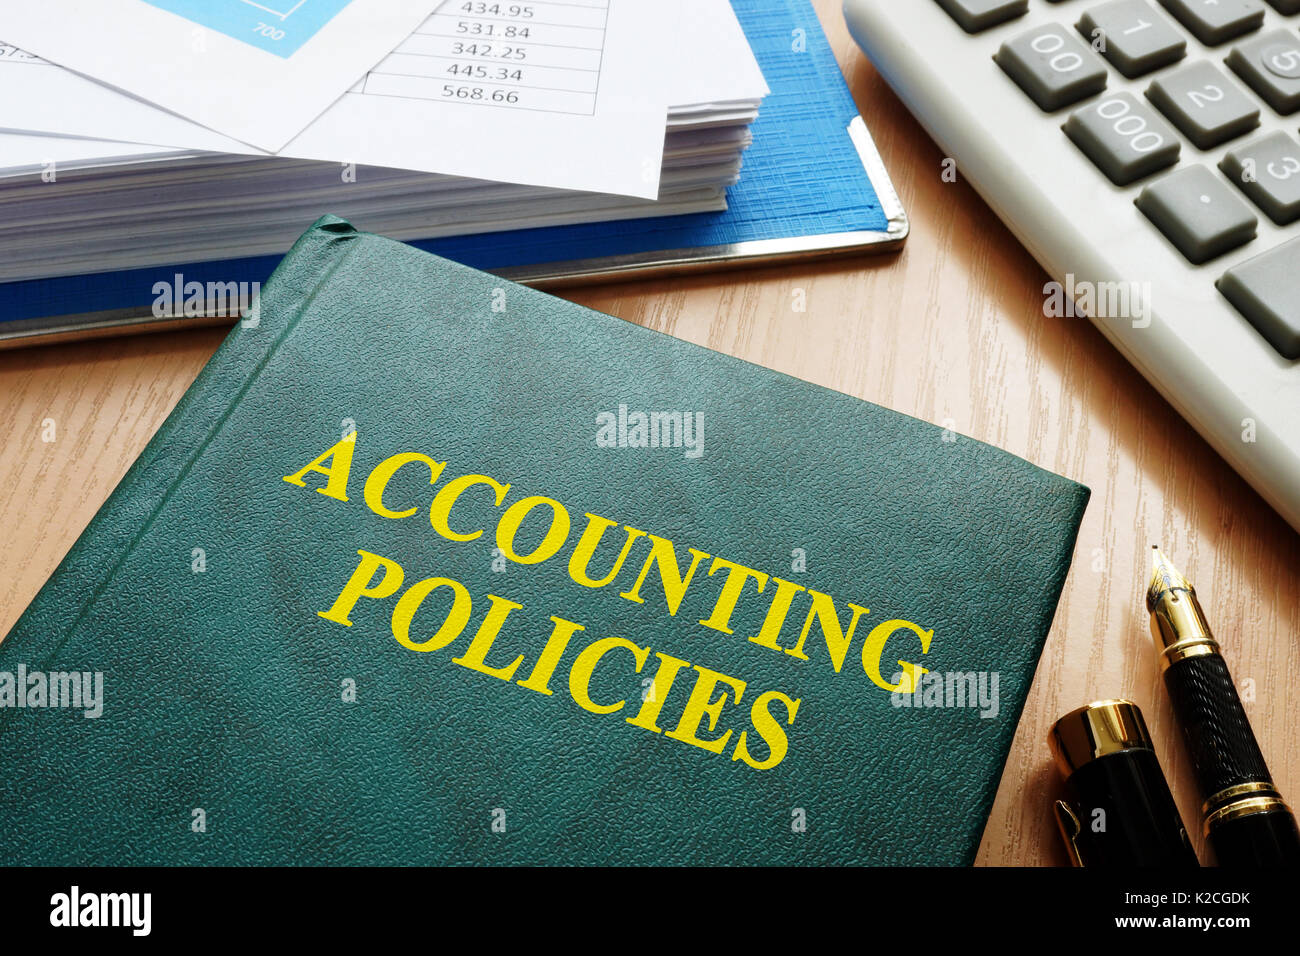 Book with title accounting policies on a table. - Stock Image